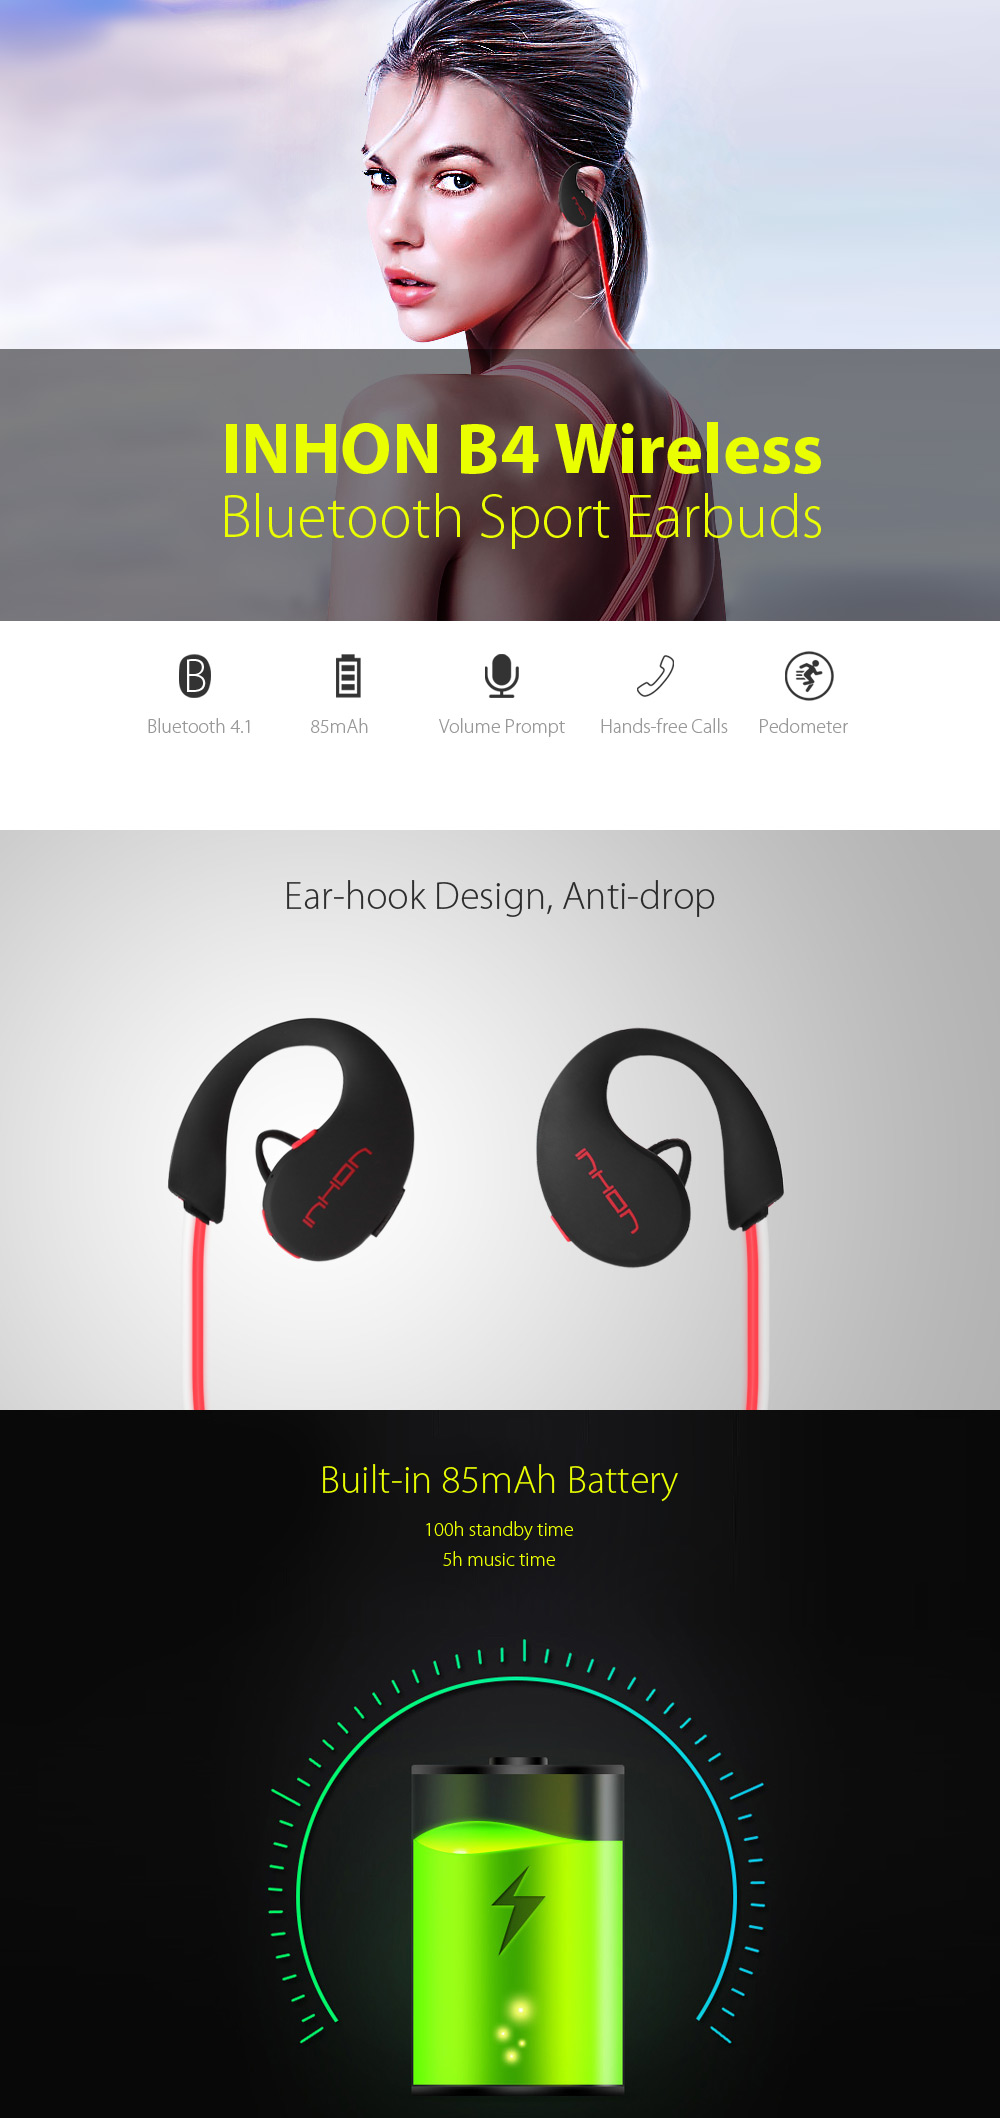 INHON B4 Wireless Bluetooth 4.1 Lighting Sport Earbuds Support Hands-free Calls Volume Control